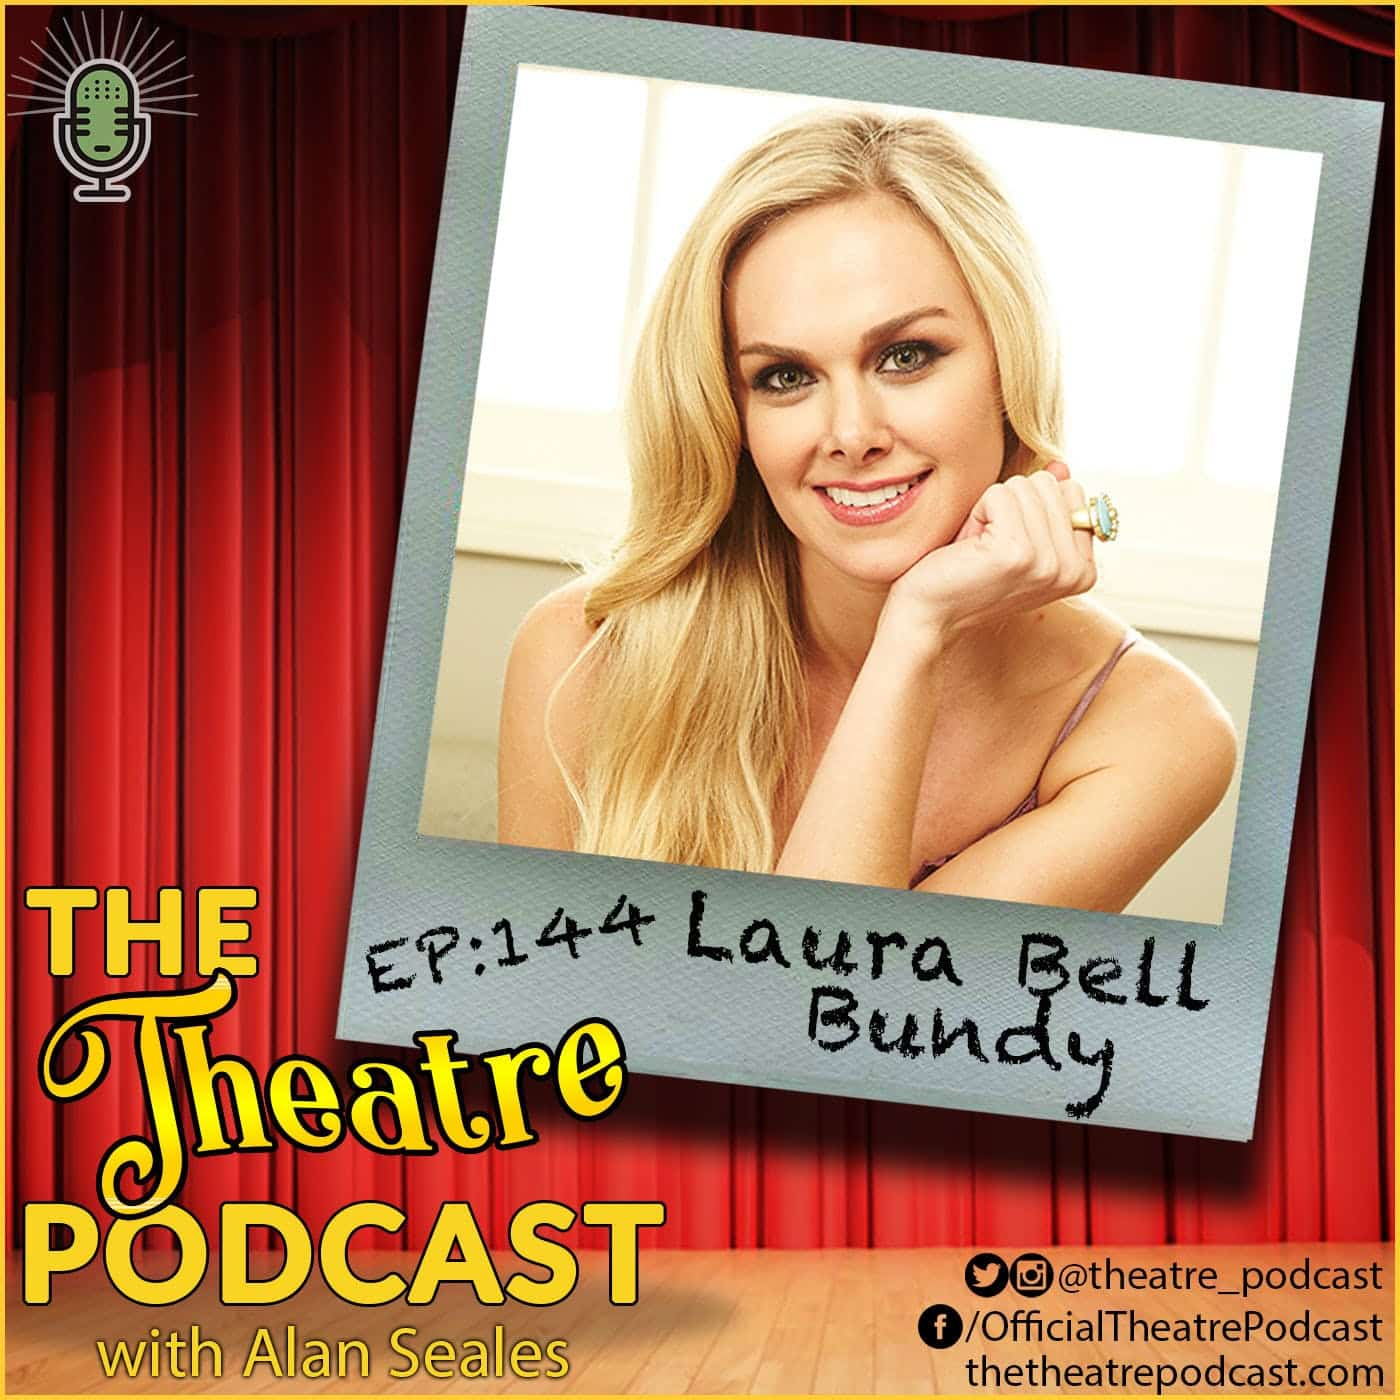 Ep144 - Laura Bell Bundy: Legally Blonde, Hairspray, Wicked, and TV/Film credits out the wazoo